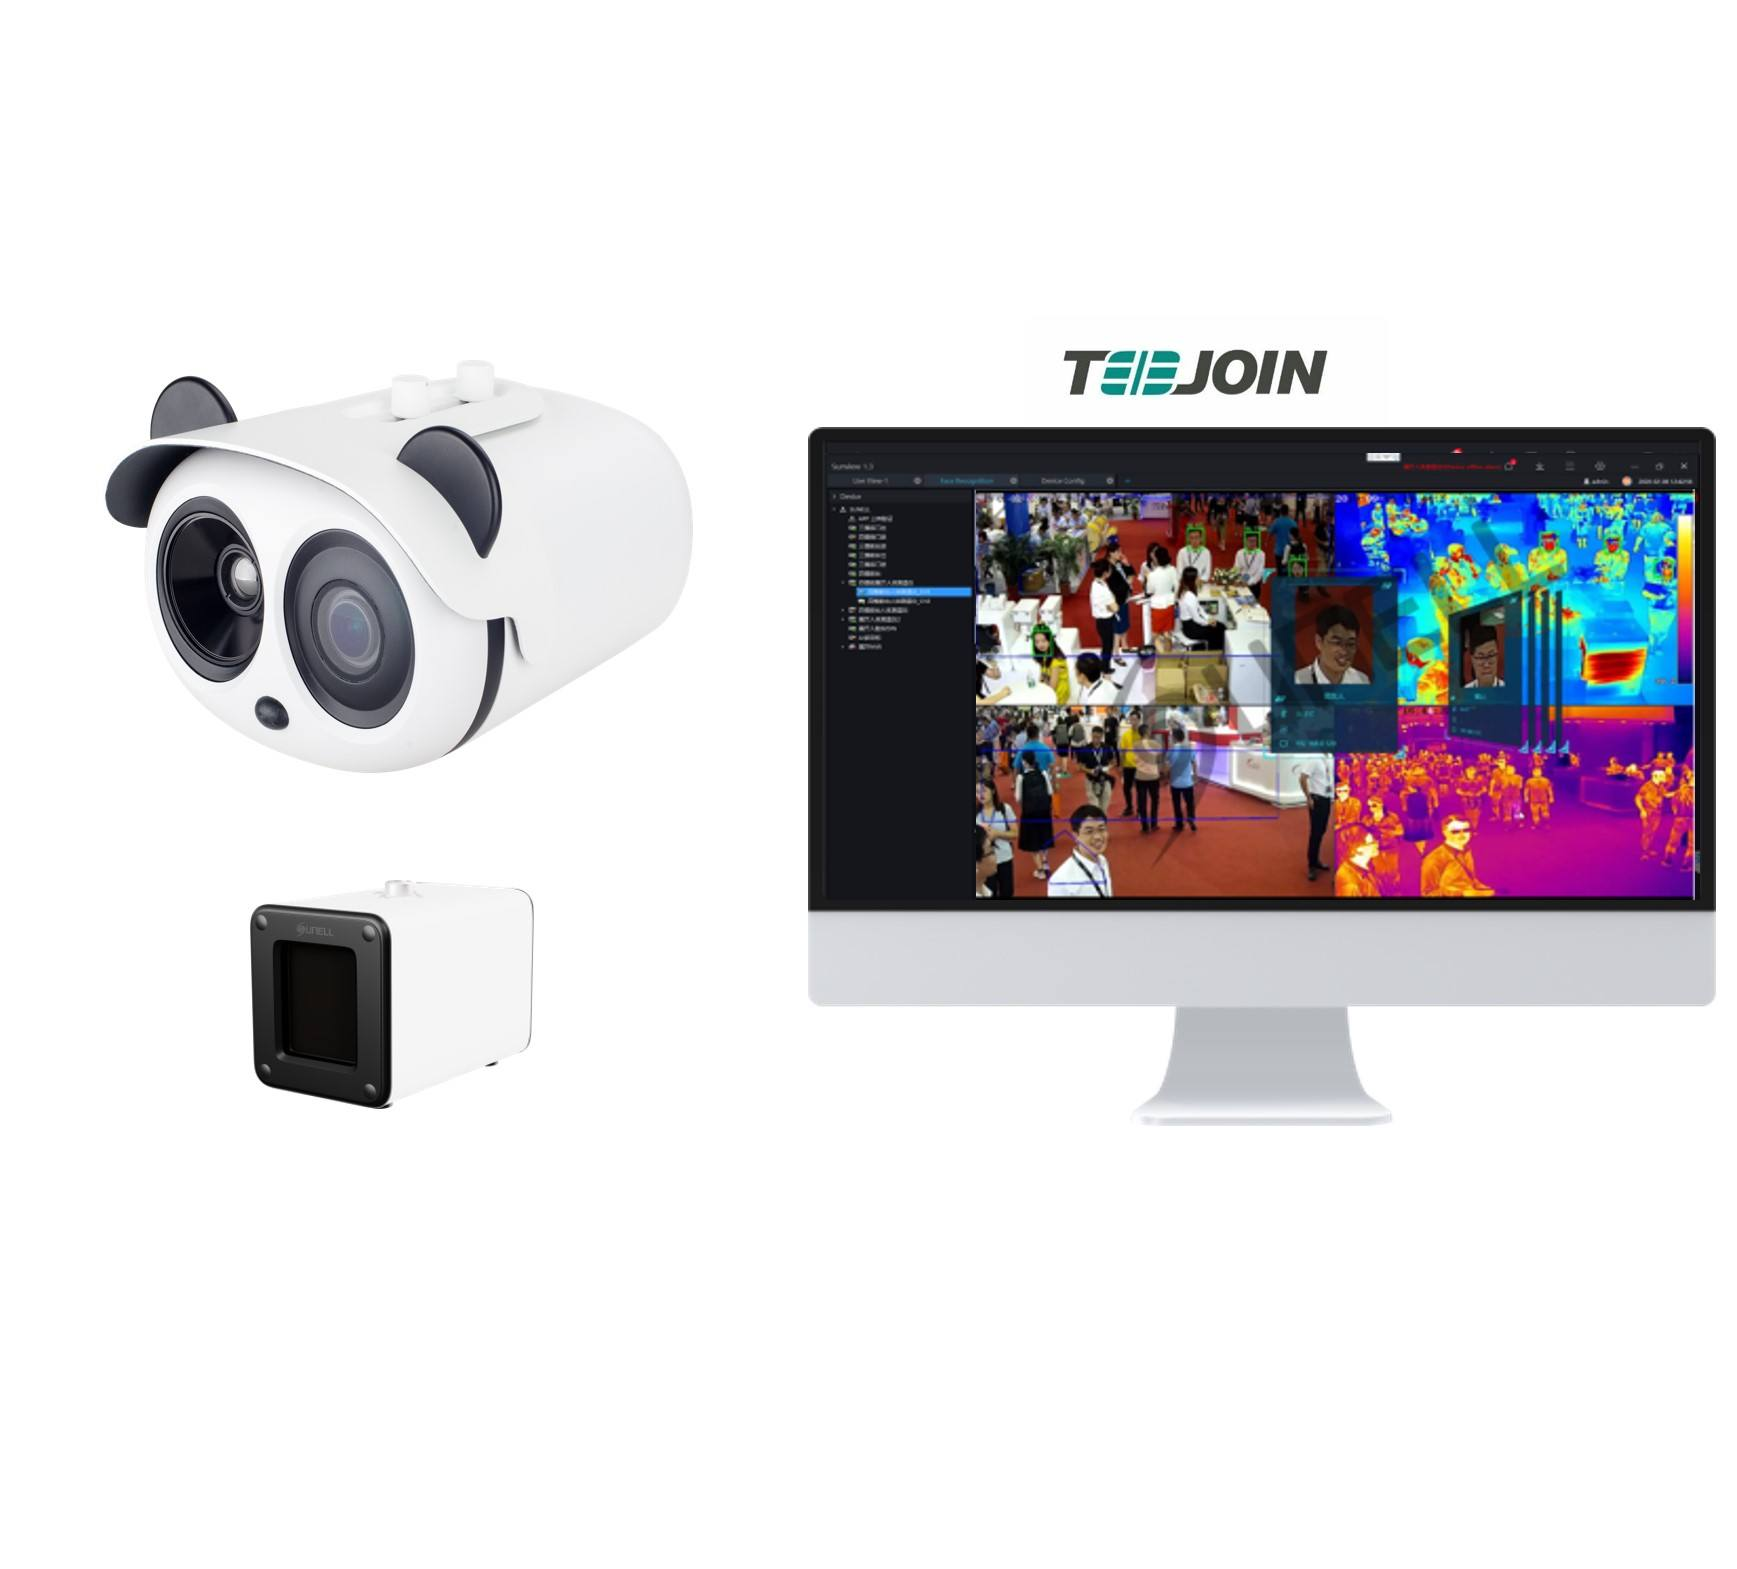 TEEJOIN China Flir Fever Detection Screening Thermal Scanner Imaging Body Temperature Infrared Face Recognition Thermal Camera